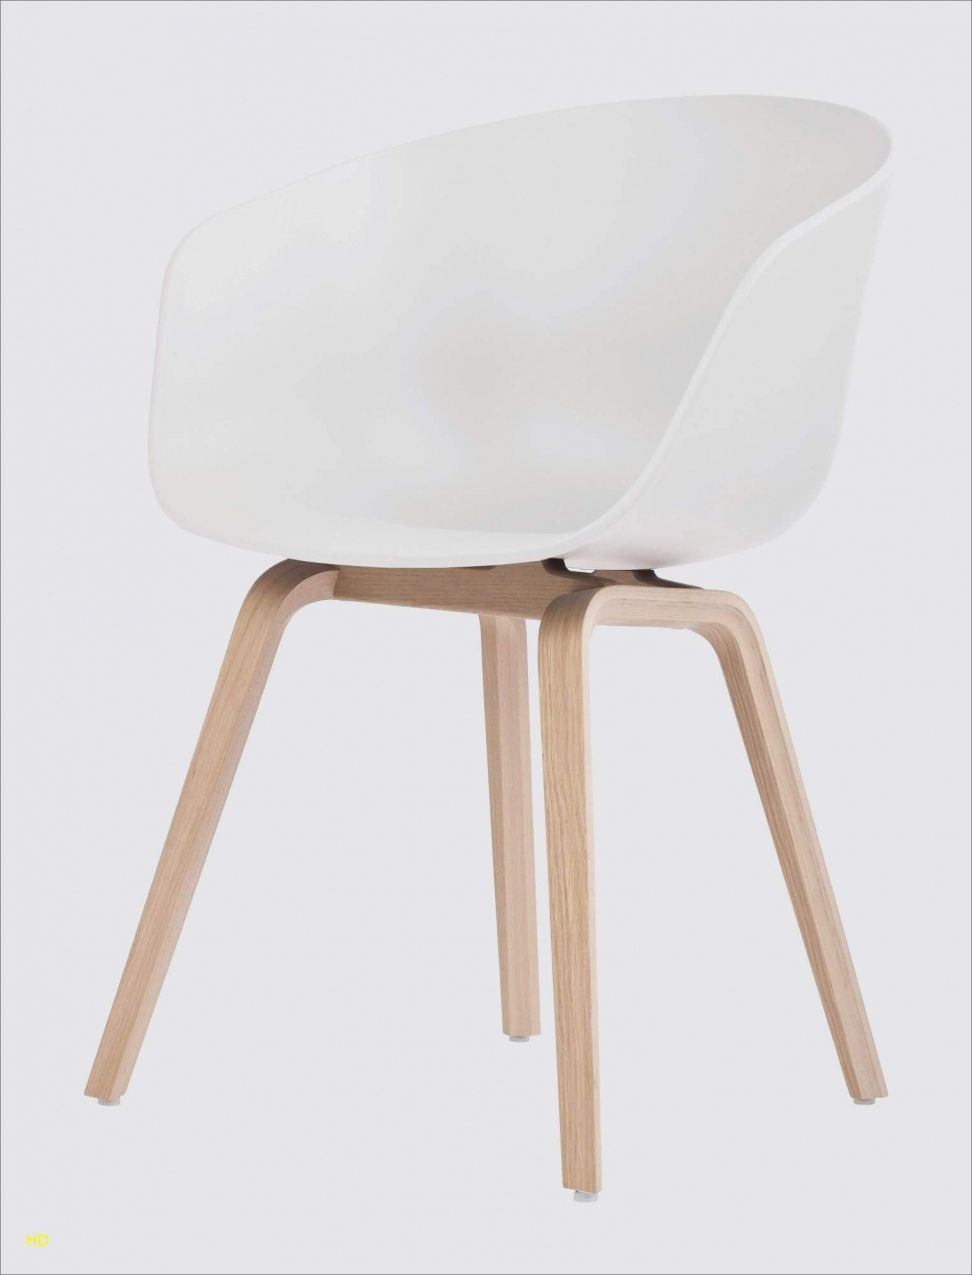 201 Gravier Resine Leroy Merlin 2019 Check More At Https Www Unionjacktrooper Com 28 Gravier Resine Leroy Merlin 2020 High Chair Chair Decor